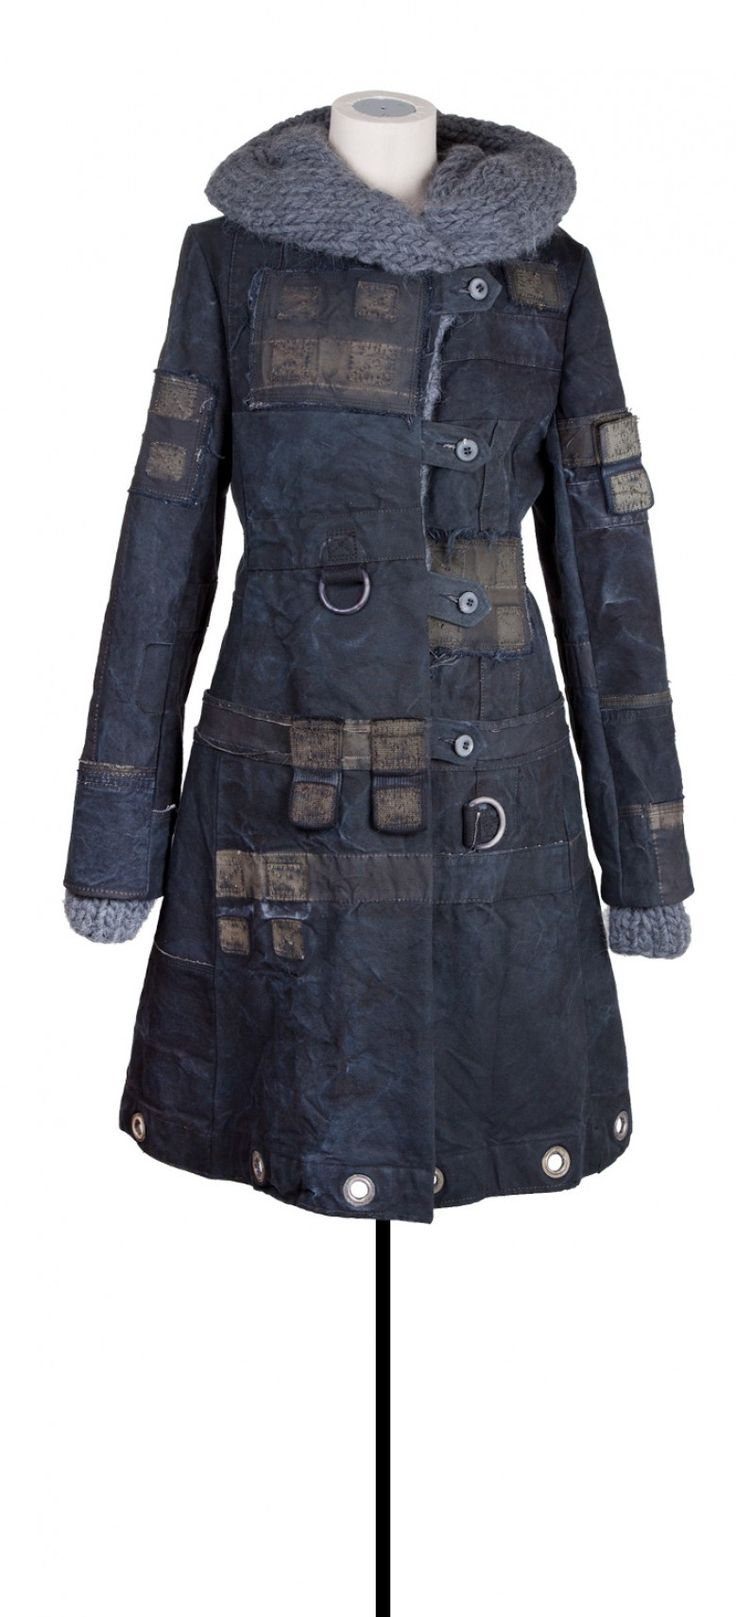 MAYER. Peace Collection: Coat Louis Long - upcycled coat; looks like it's made from old sails